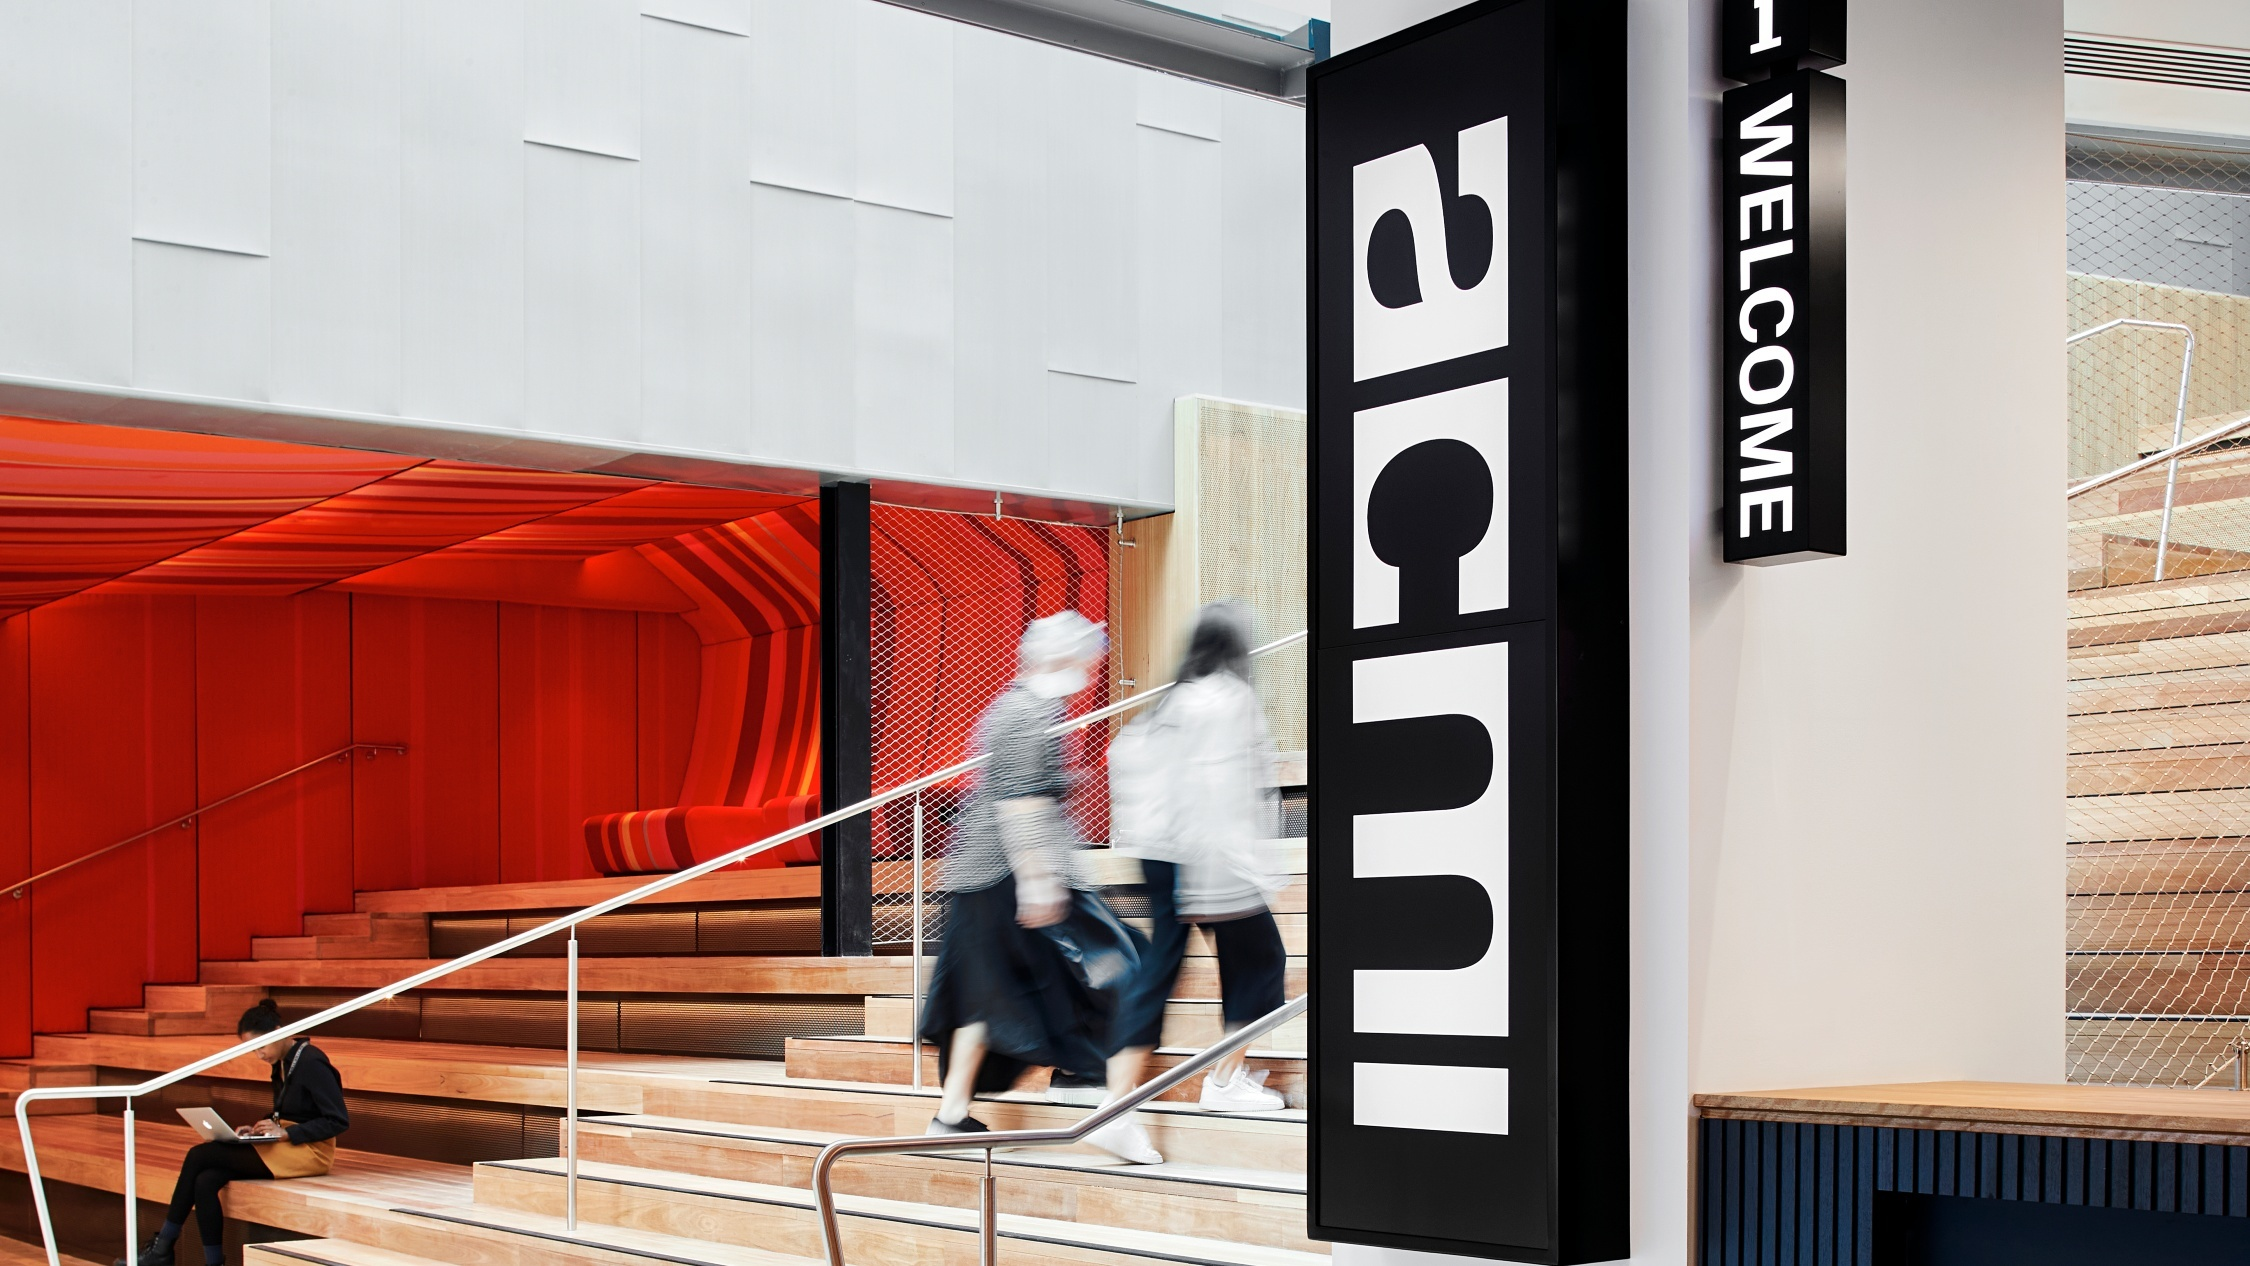 Two people on the ACMI staircase, with an ACMI sign in the foreground